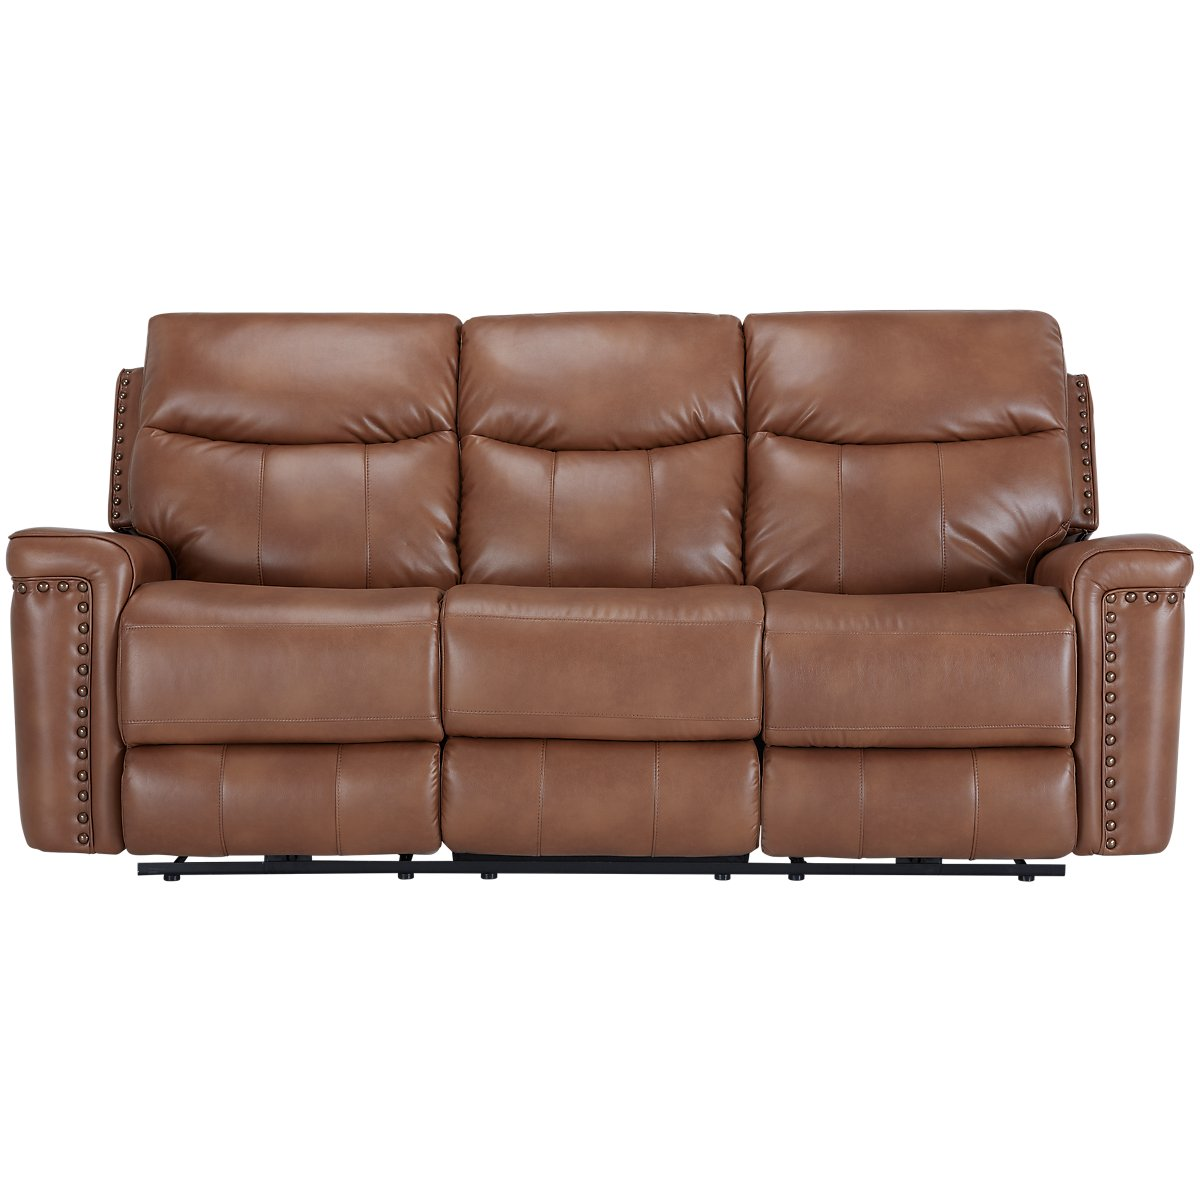 City furniture wallace medium brown microfiber reclining sofa Brown microfiber couch and loveseat